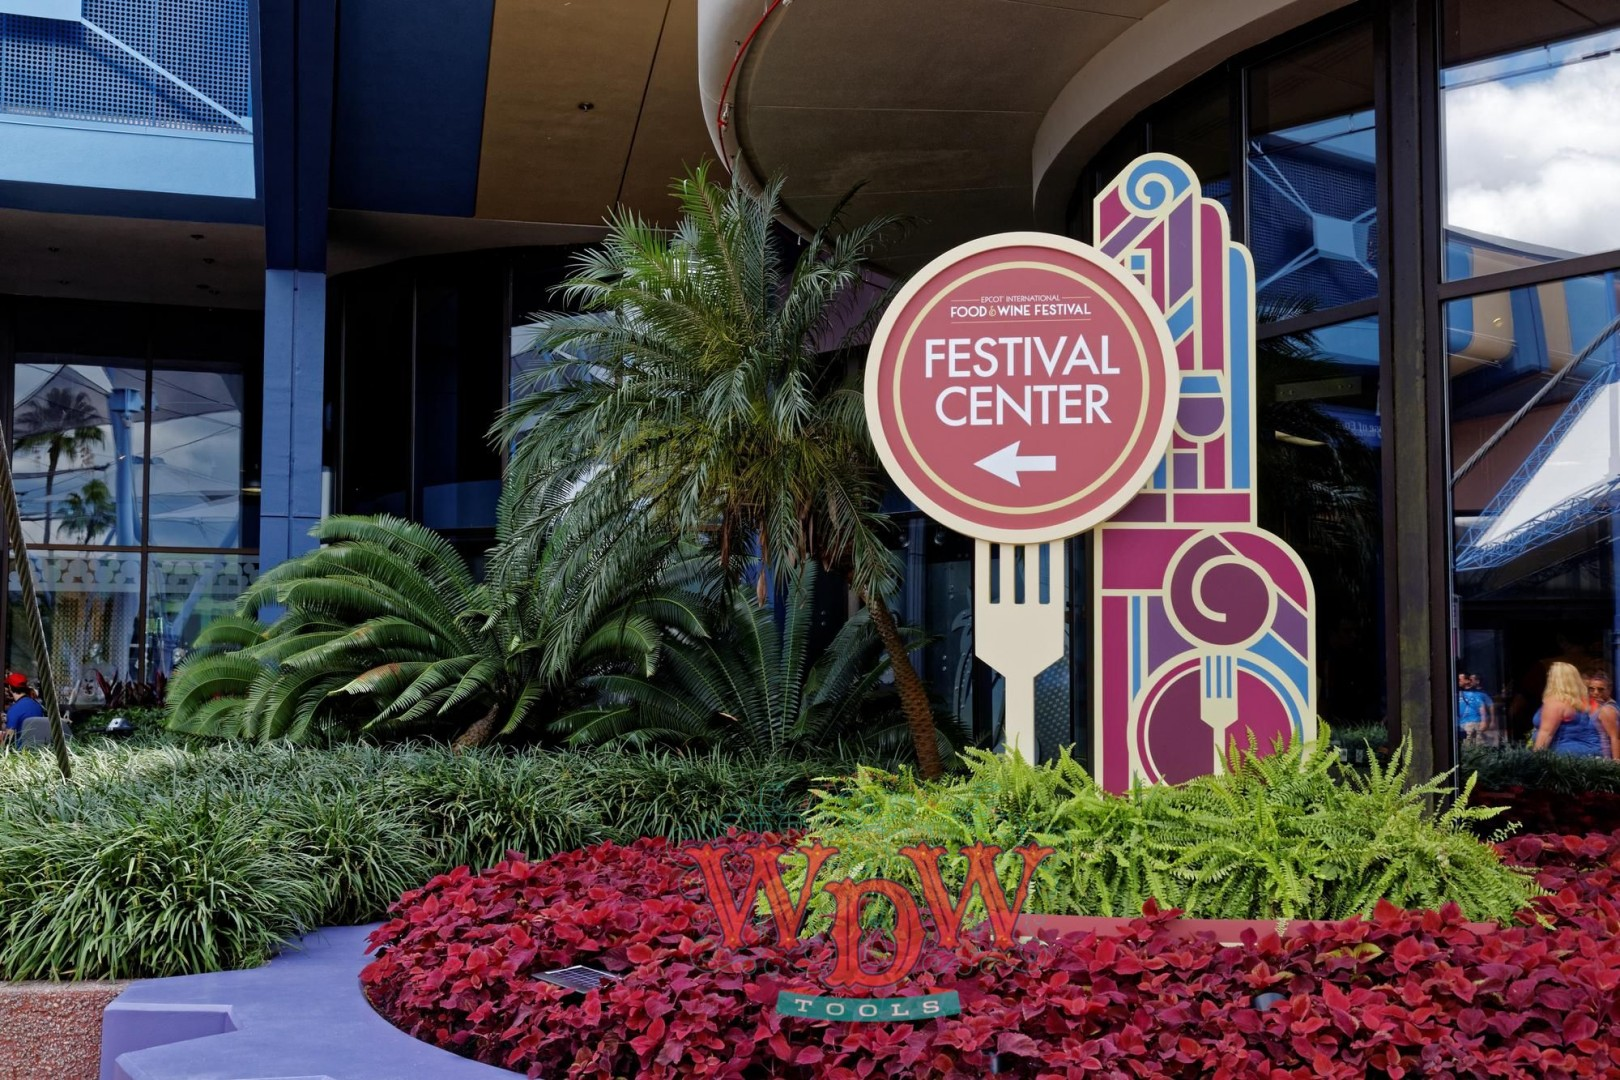 Sign directing guests to Epcot's F&W Festival Center